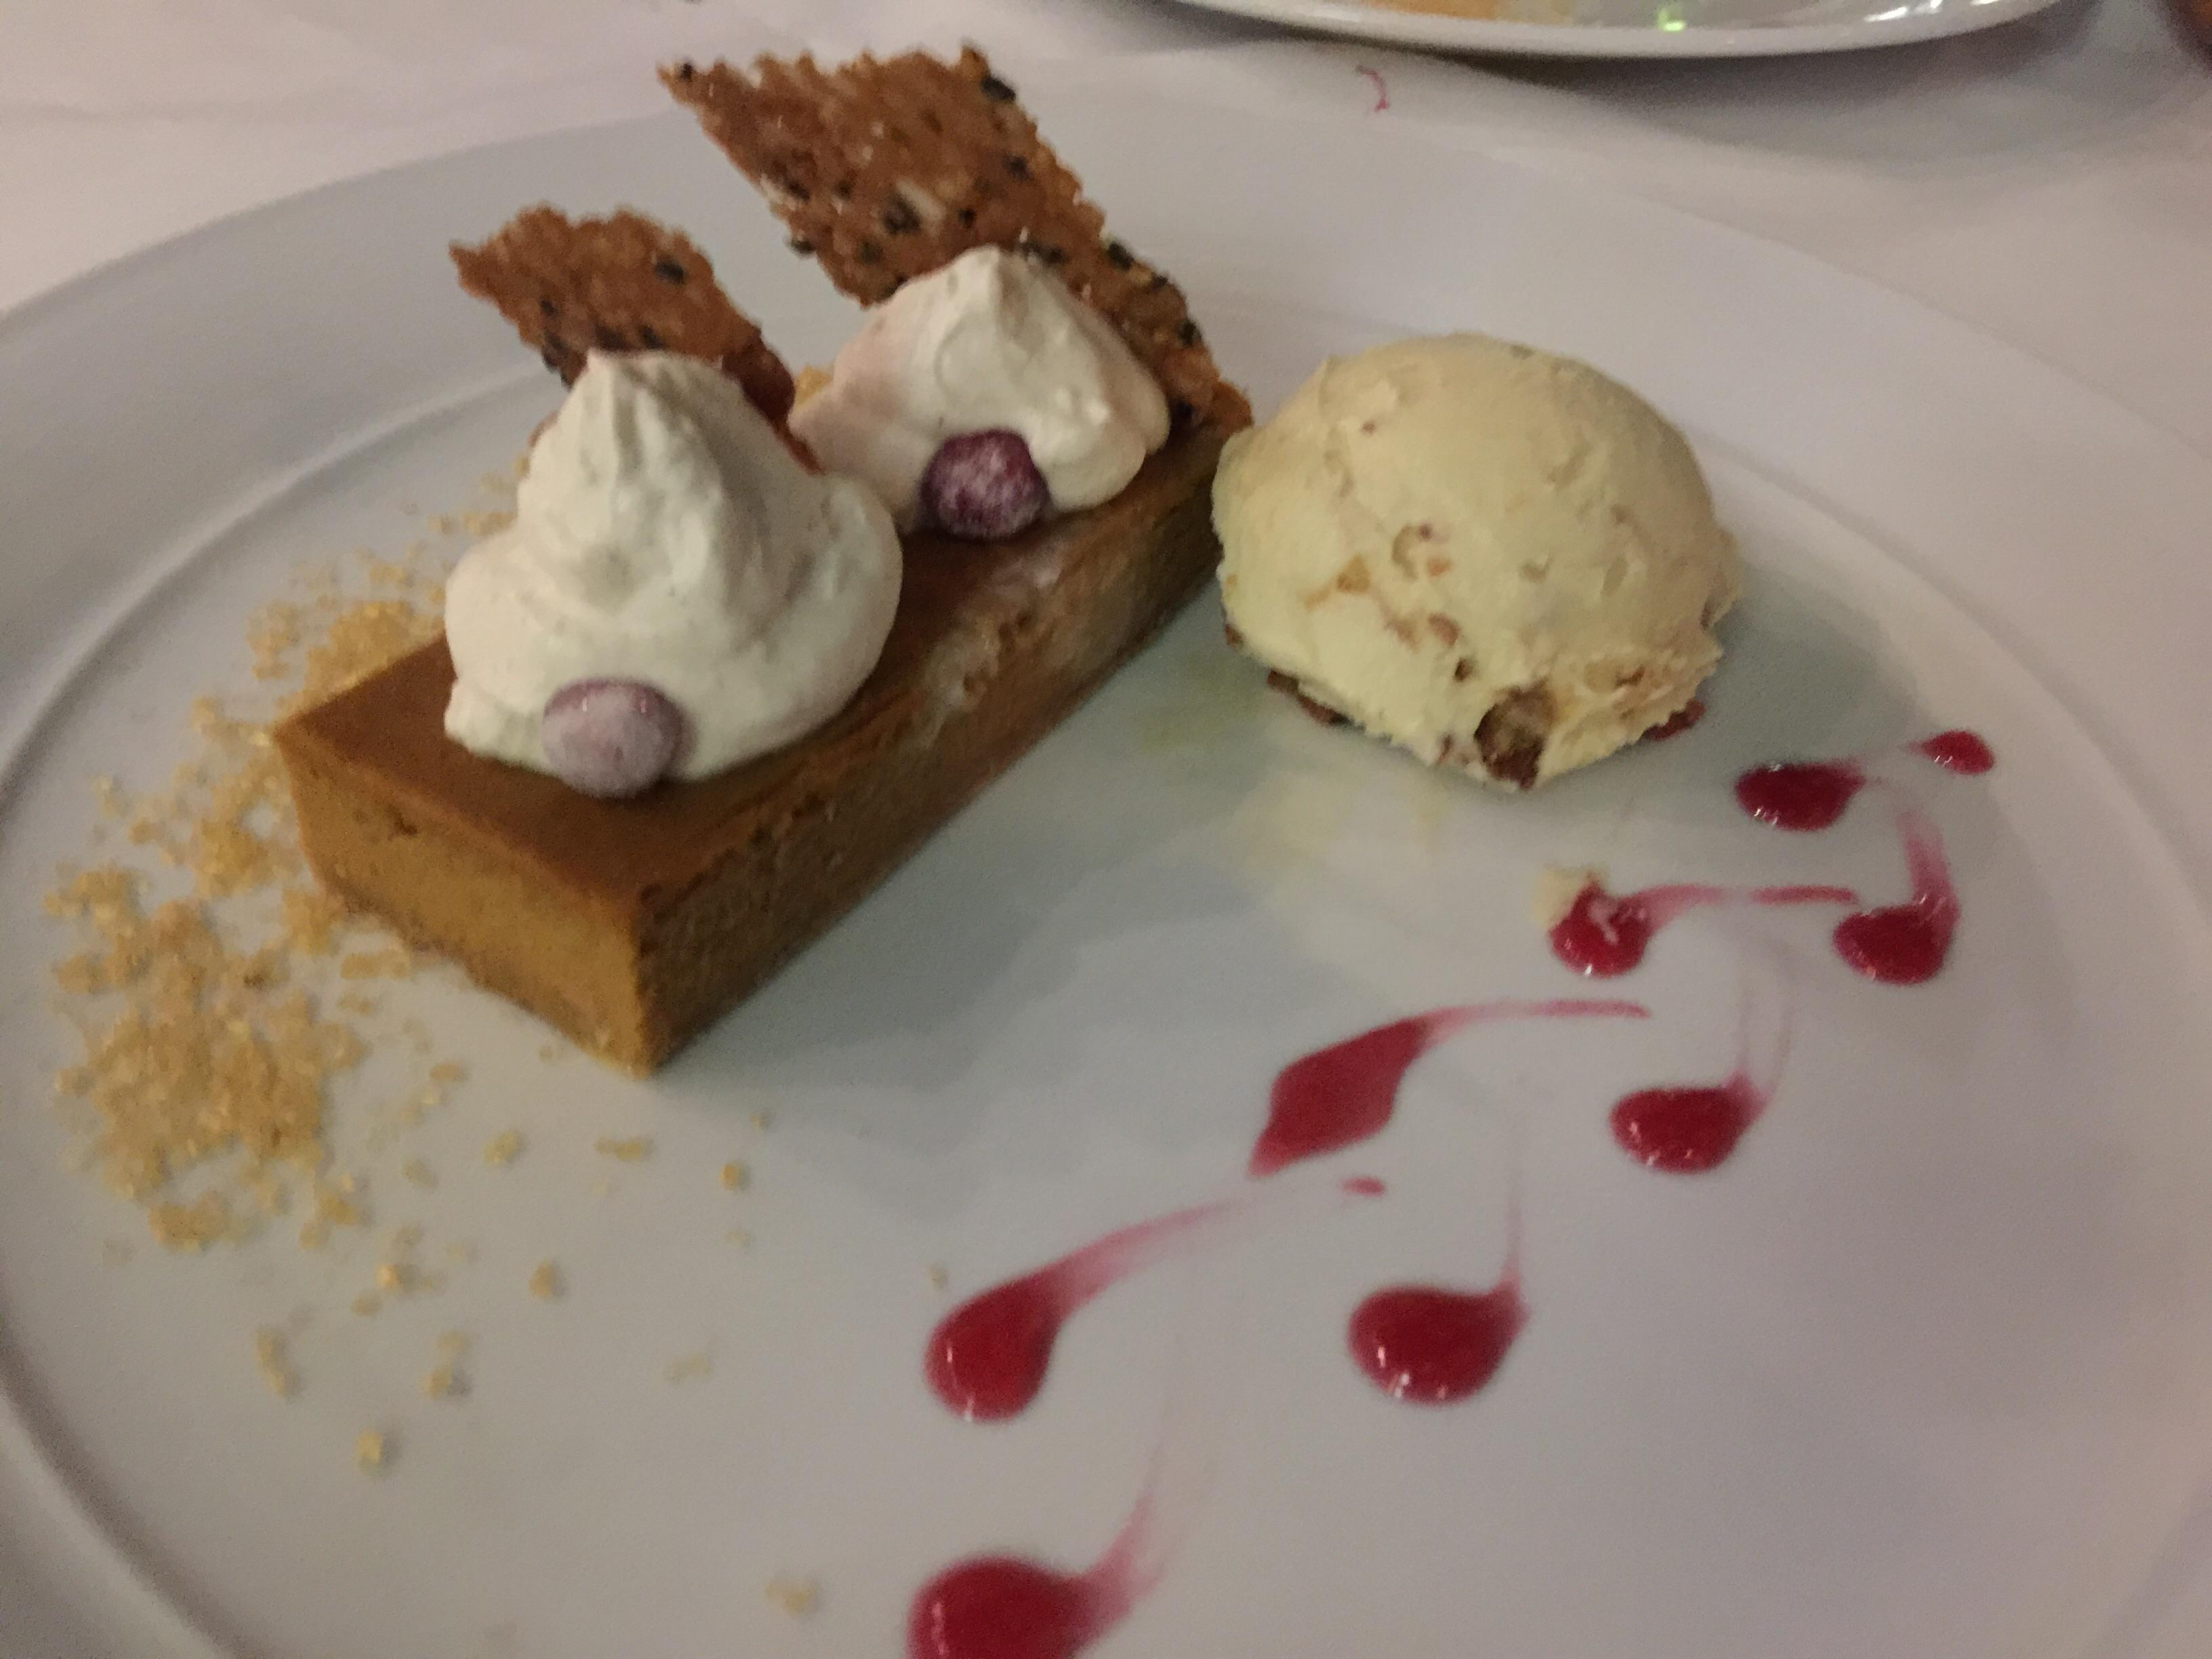 Pumpkin pie at Mandalay Bay Las Vegas #food